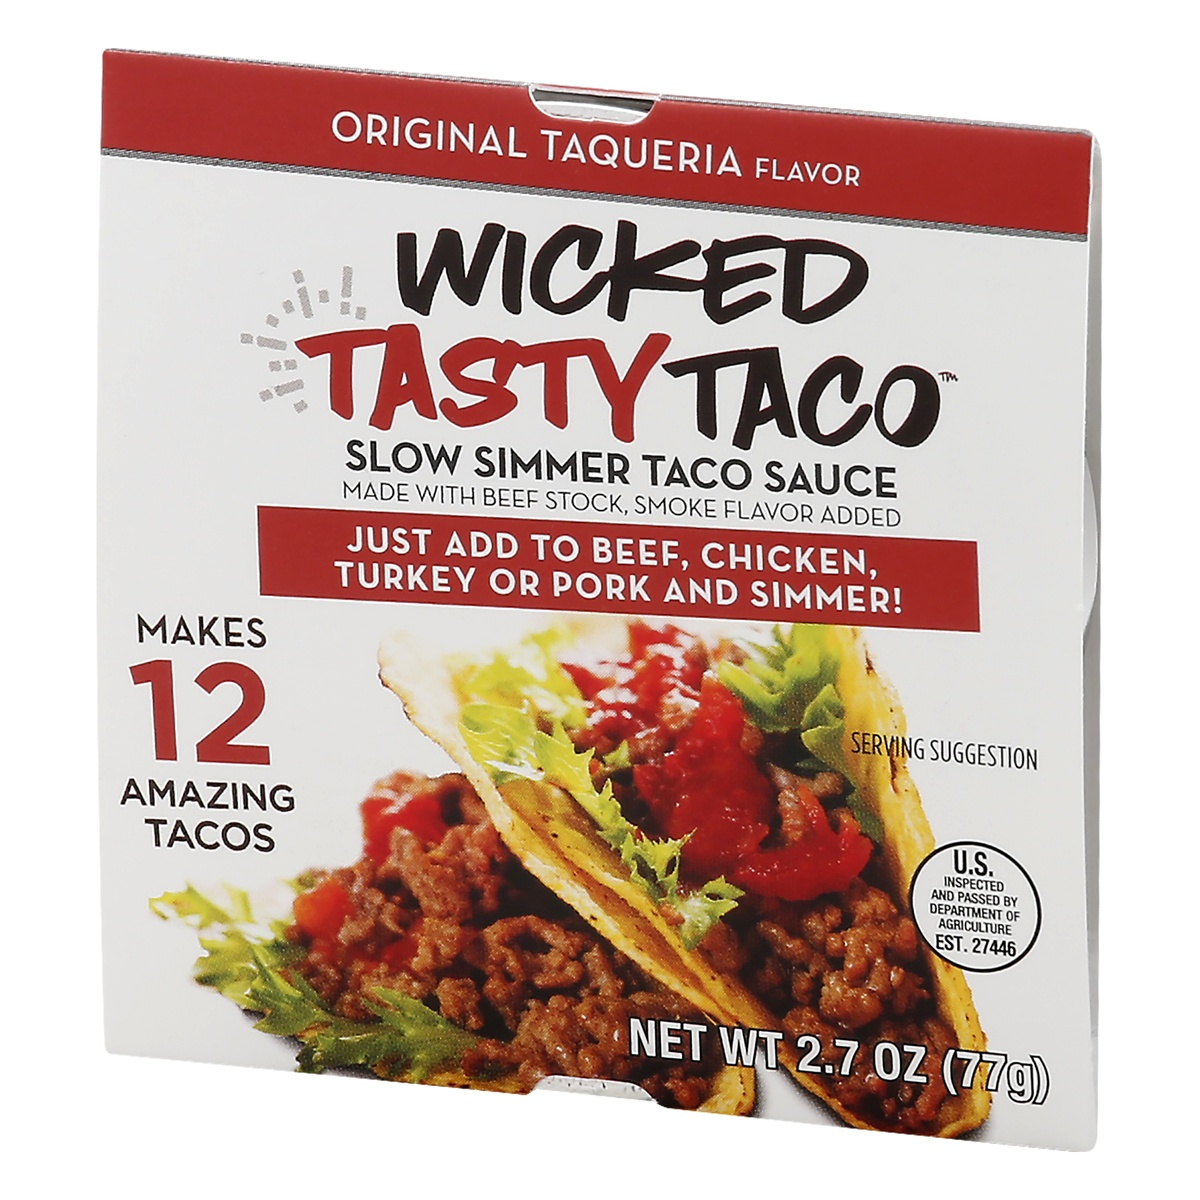 slide 3 of 10, Kitchen Accomplice Wicked Tasty Taco Original Taqueria Slow Simmer Taco Sauce,